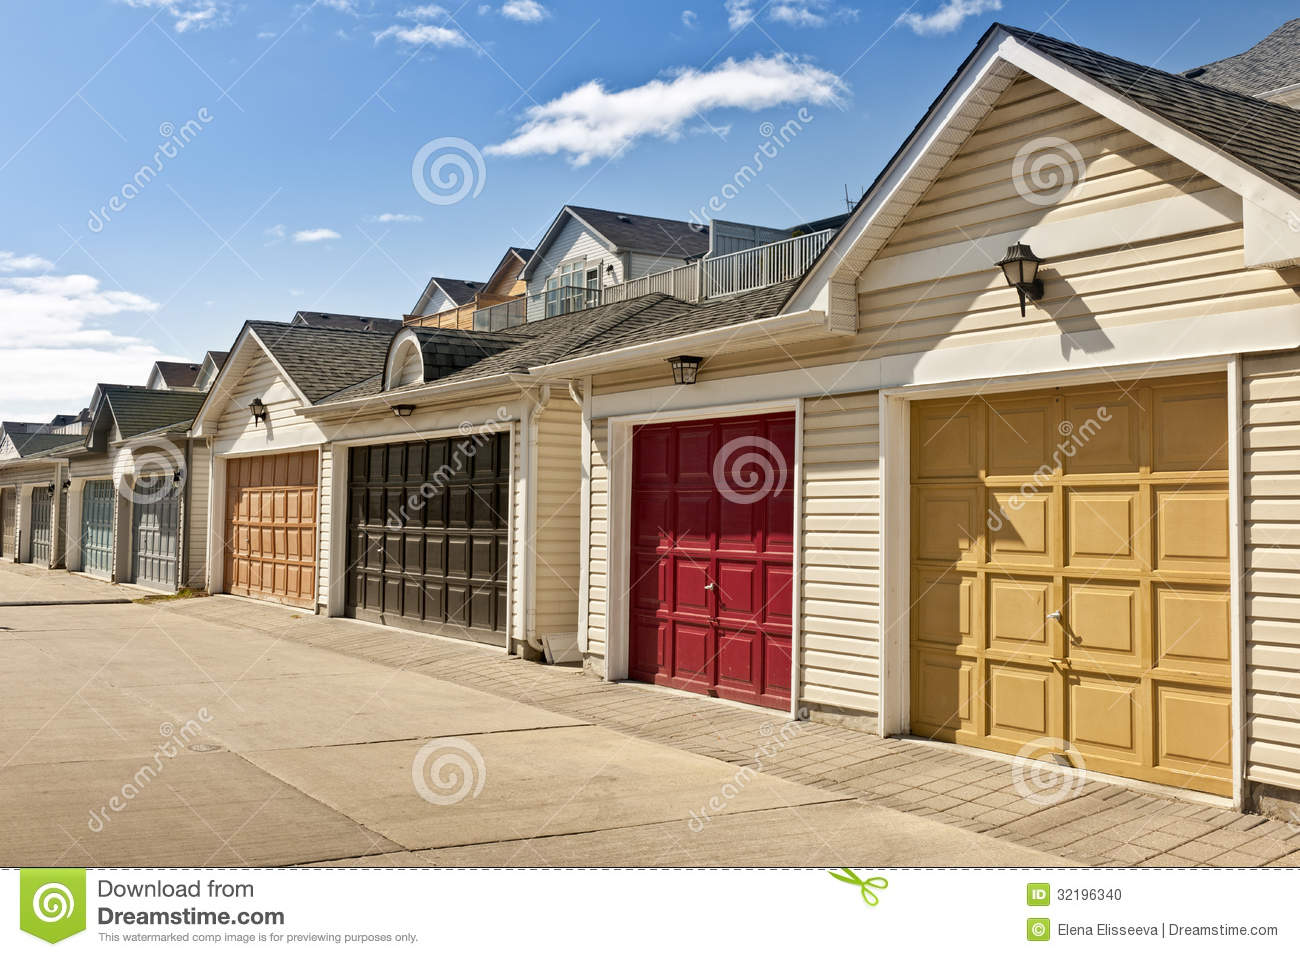 957 #2A62A1 Row Of Parking Garages Stock Photo Image: 32196340 wallpaper Garage Doors In My Area 37451300